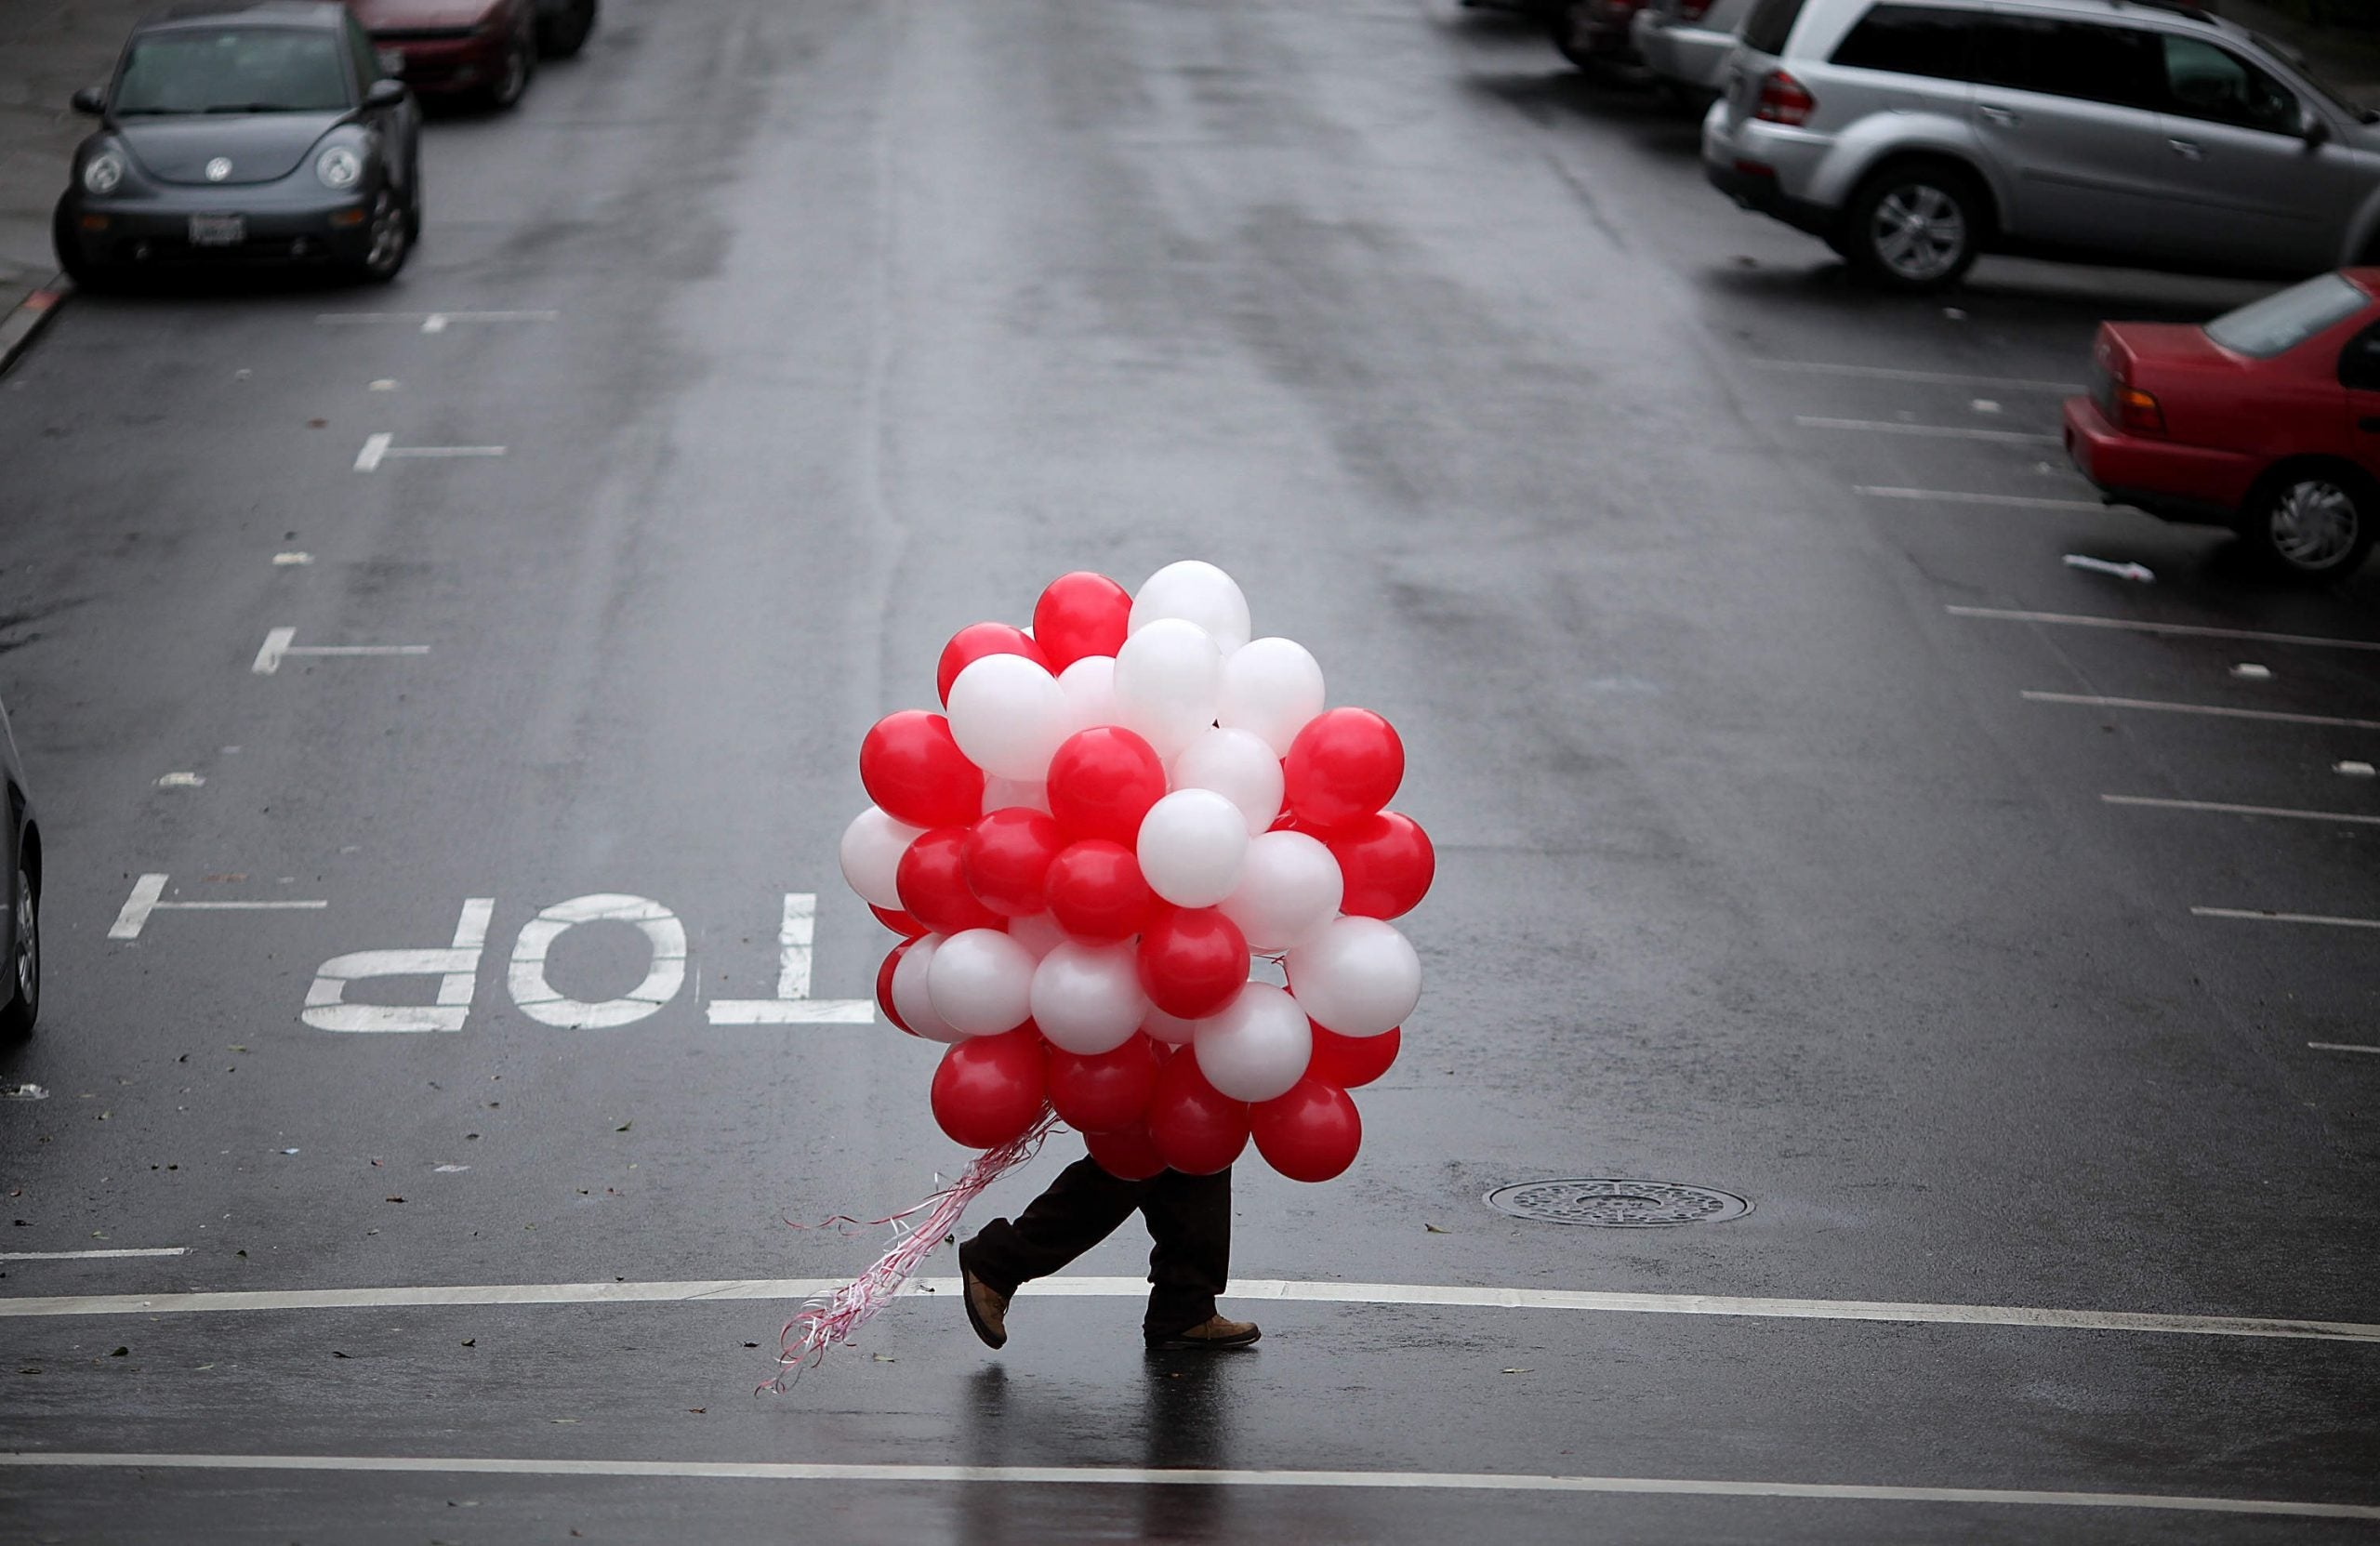 It's time to get over Valentine's Day cynicism